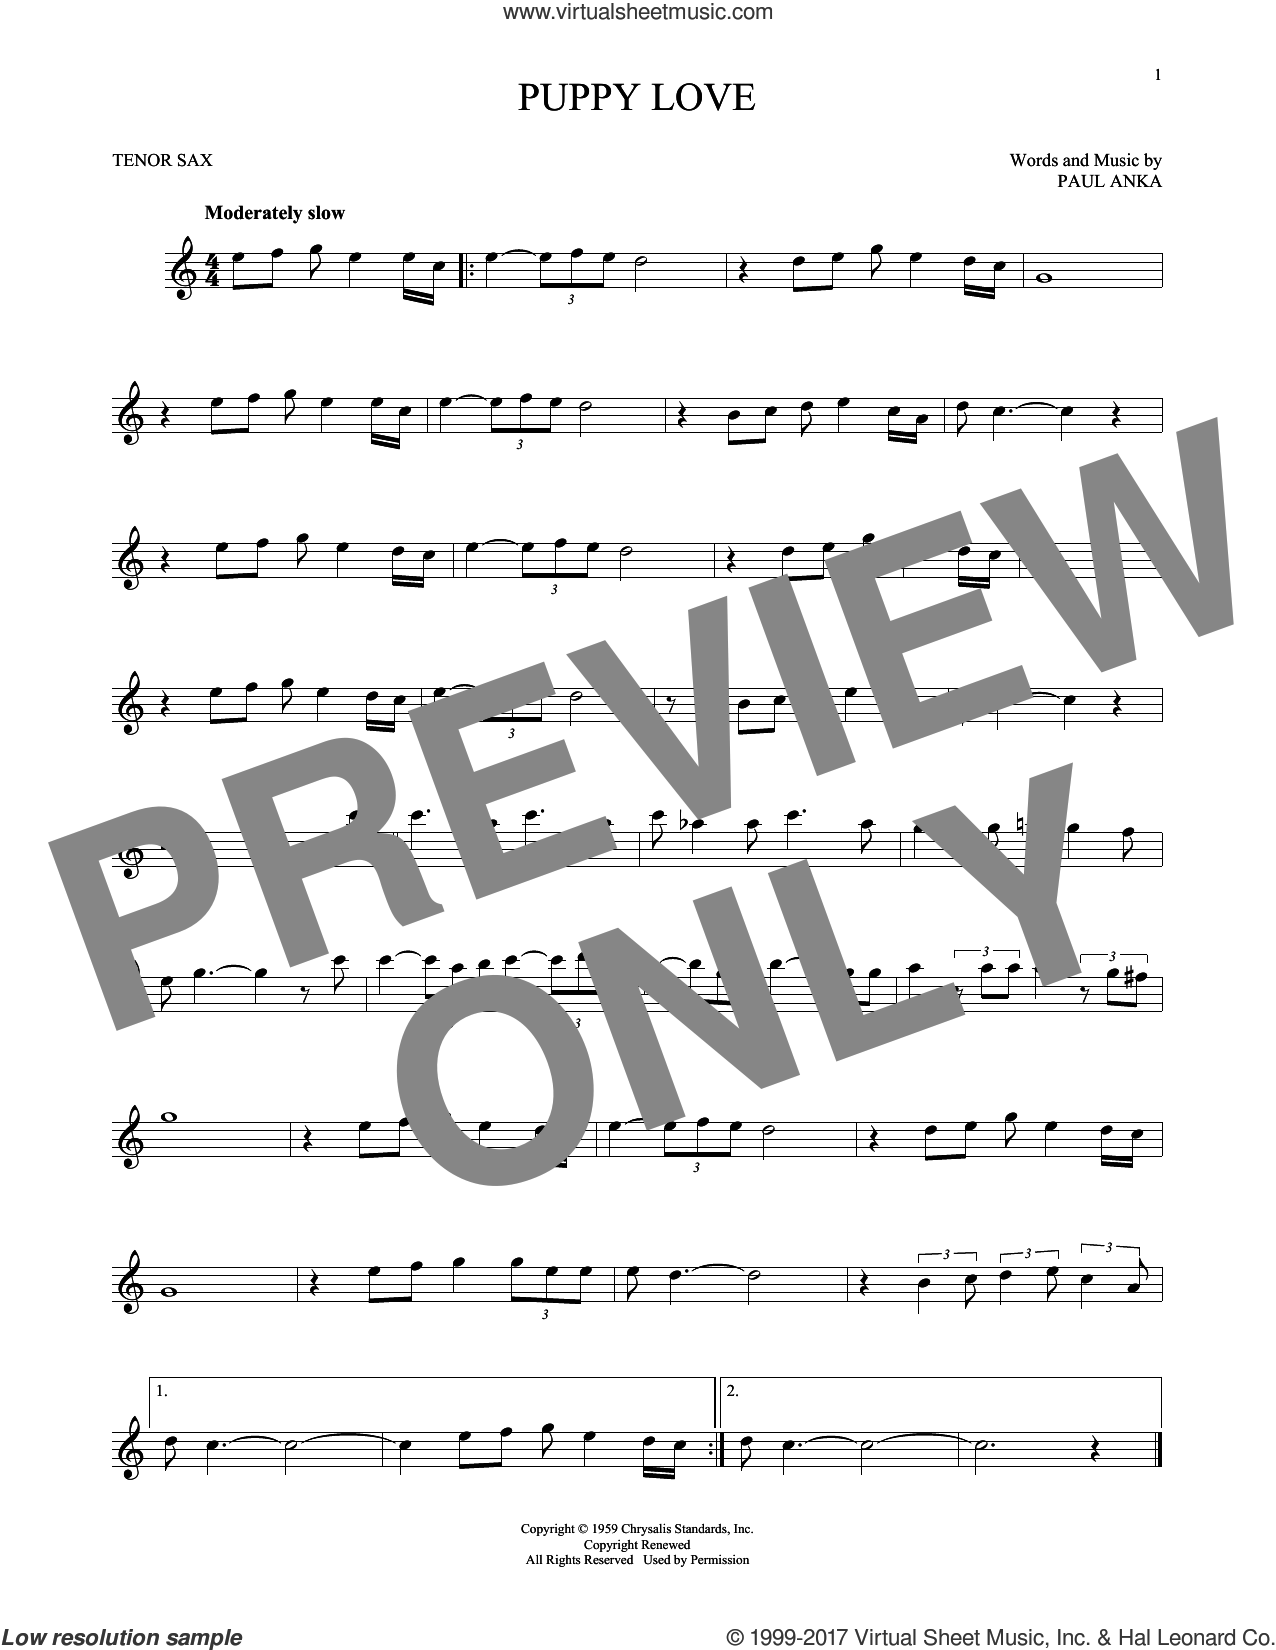 Puppy Love sheet music for tenor saxophone solo by Paul Anka and Donny Osmond, intermediate skill level